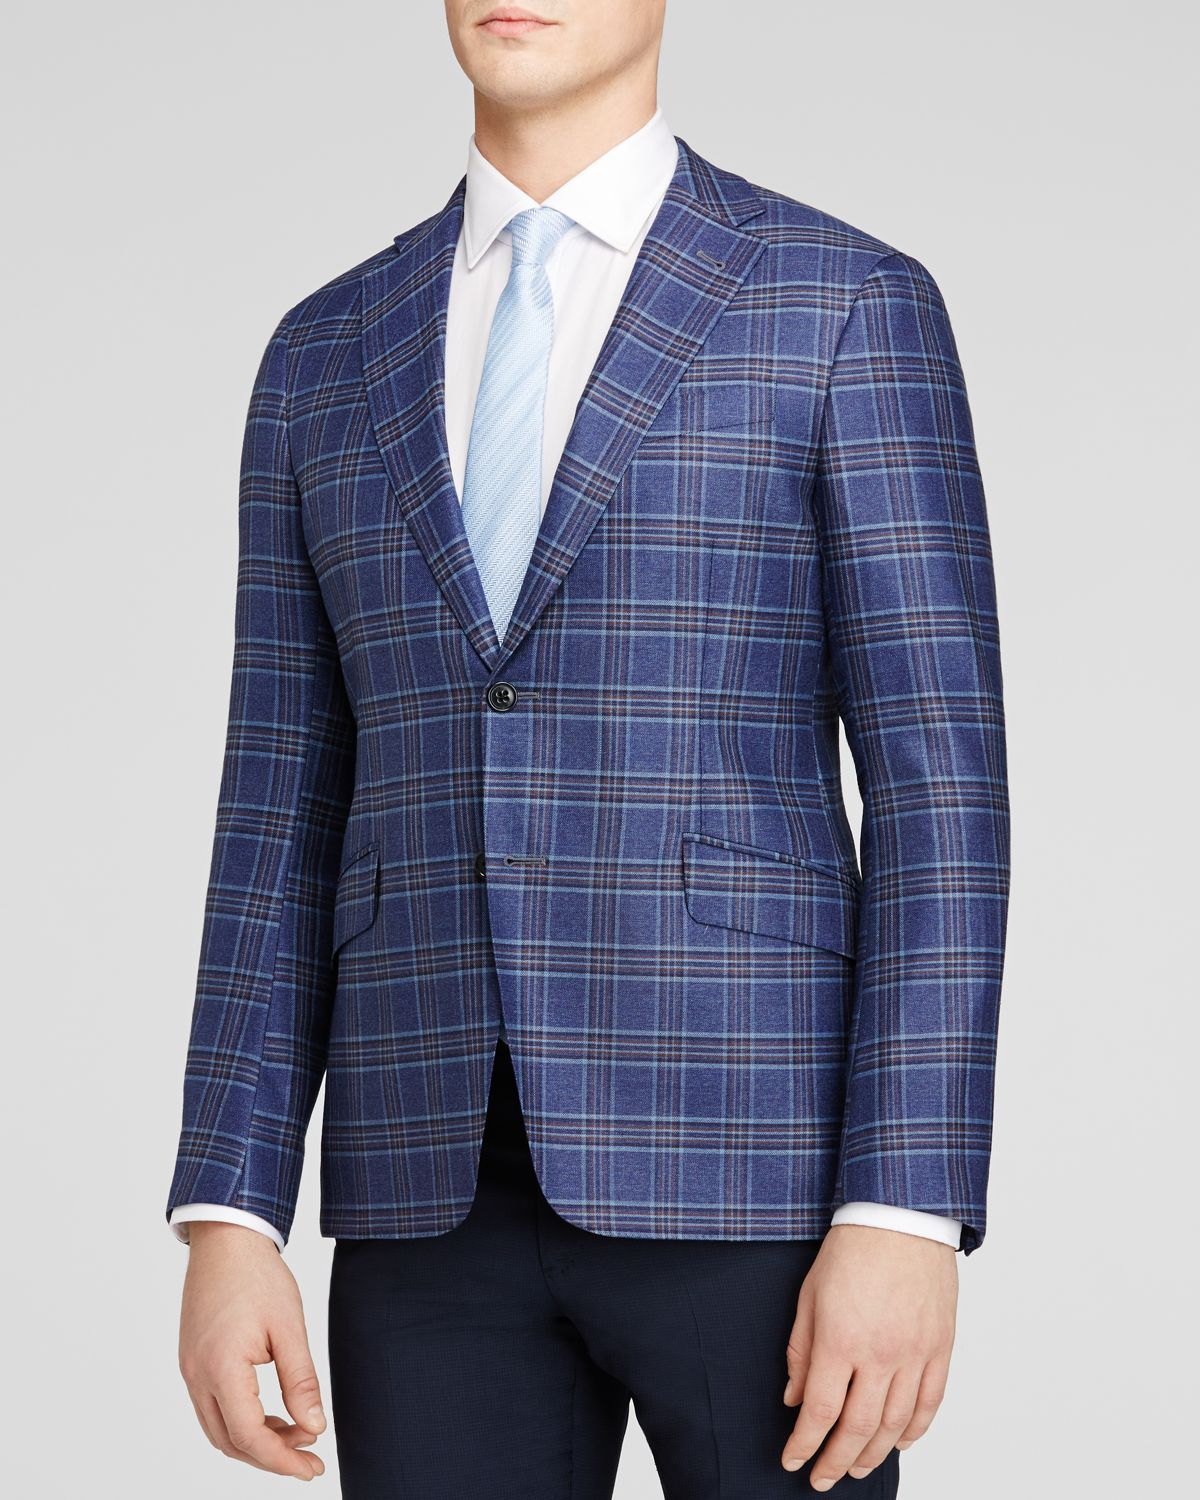 Blue Plaid Jacket $1, With its perfect shade of blue, large tonal plaid pattern, and lightweight wool, silk, & linen blend, this jacket is destined to be your new favorite for the summer.